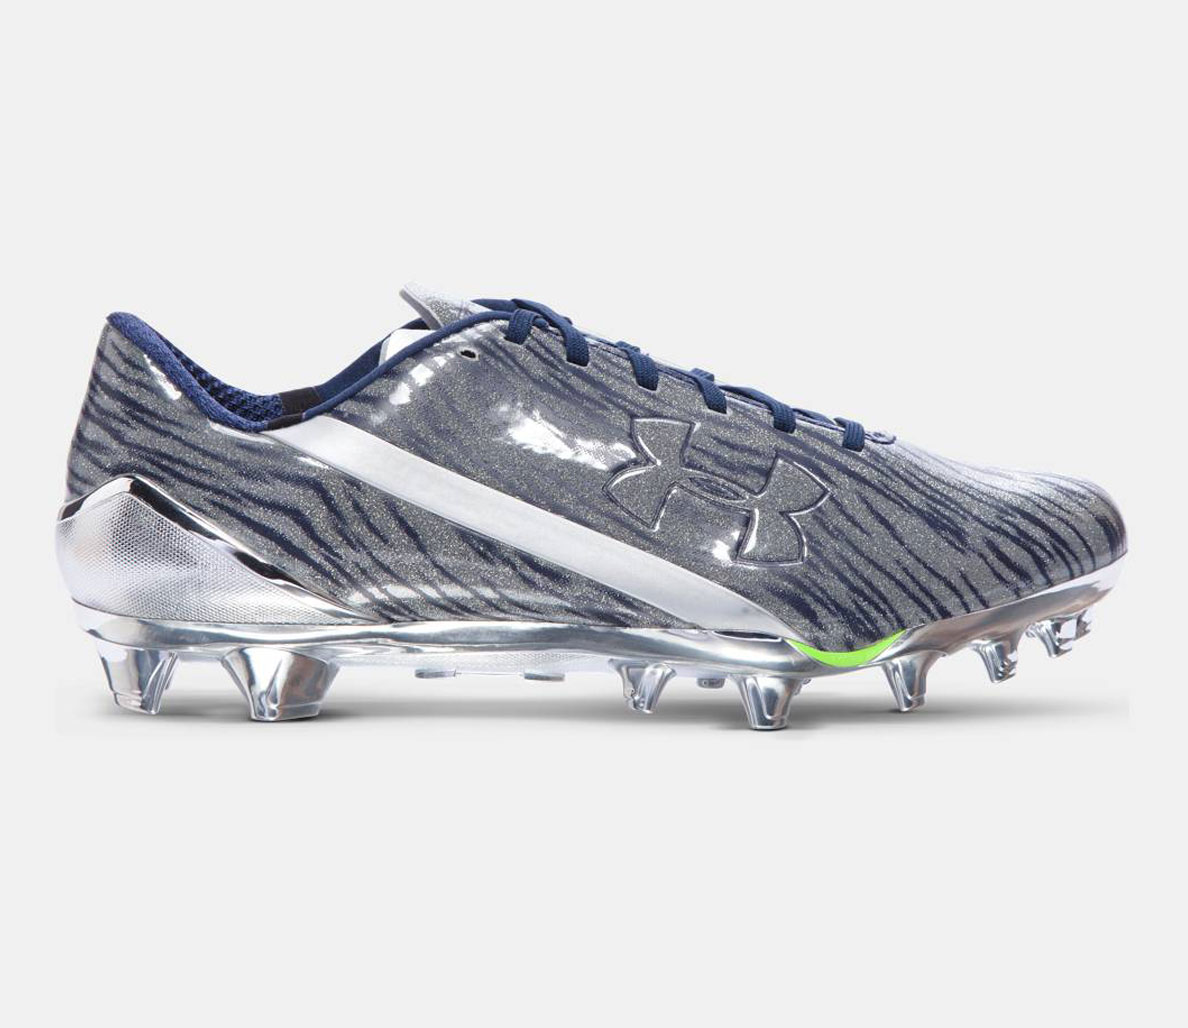 The 10 Coolest Football Cleats for the 2016-2017 Season 56c4b23b3